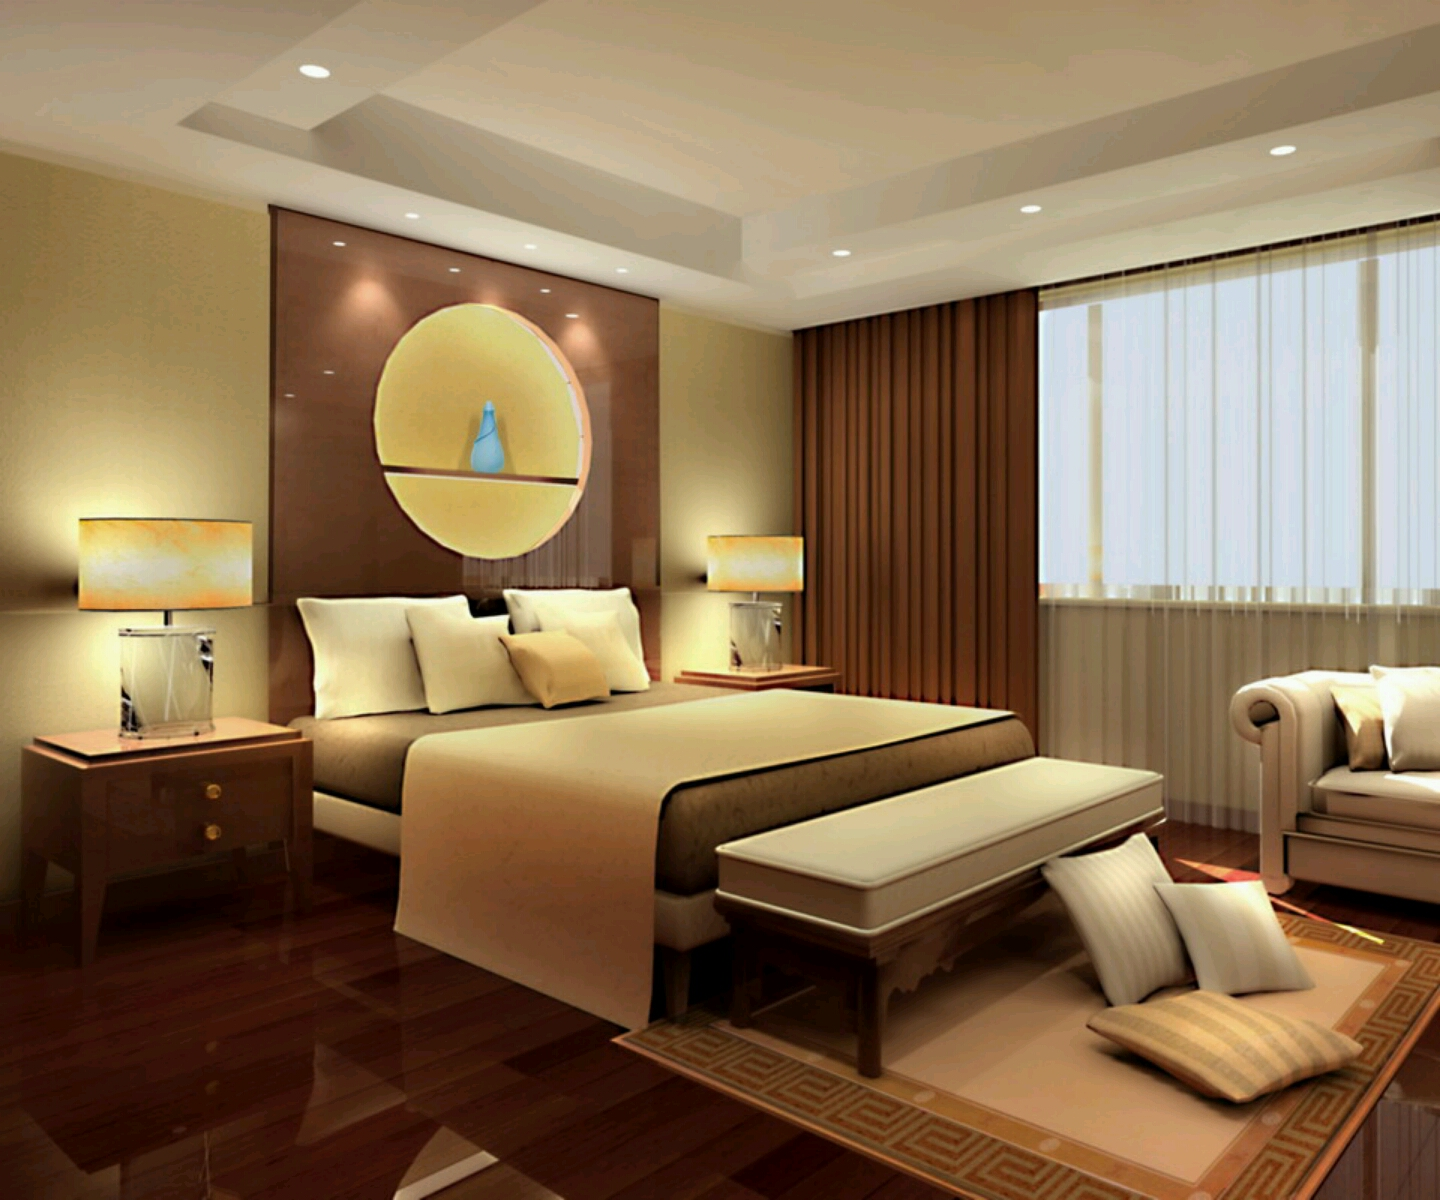 New home designs latest modern beautiful bedrooms for Bedroom interior design pictures